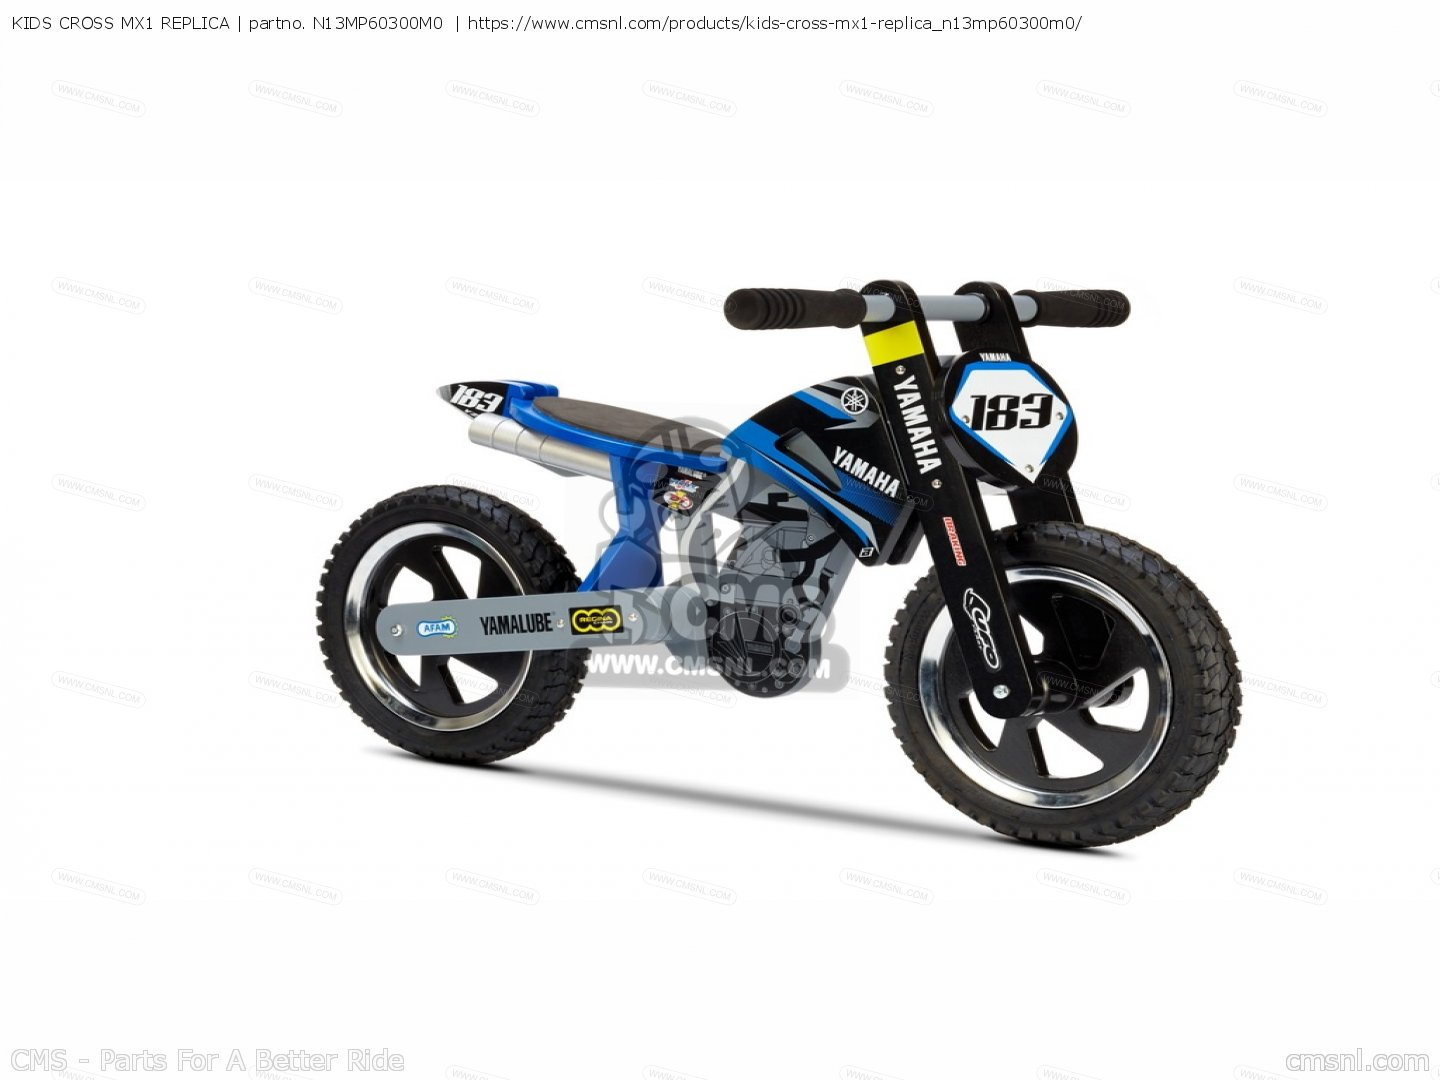 12 Volt Motorcycles For Kids